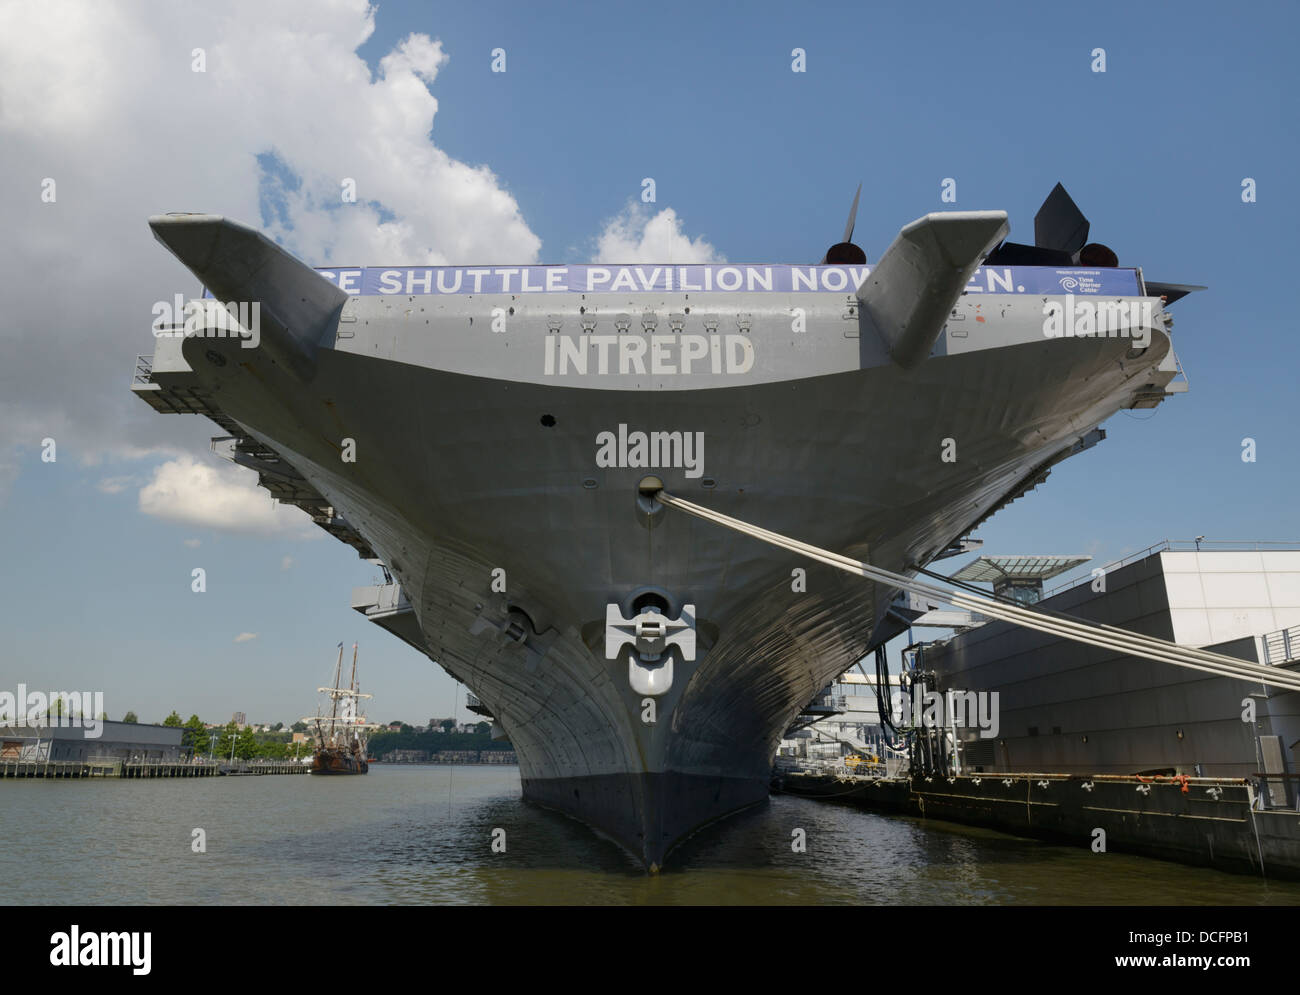 USS Intrepid air craft carrier.  Intrepid Sea, Air and Space Museum, NY - Stock Image